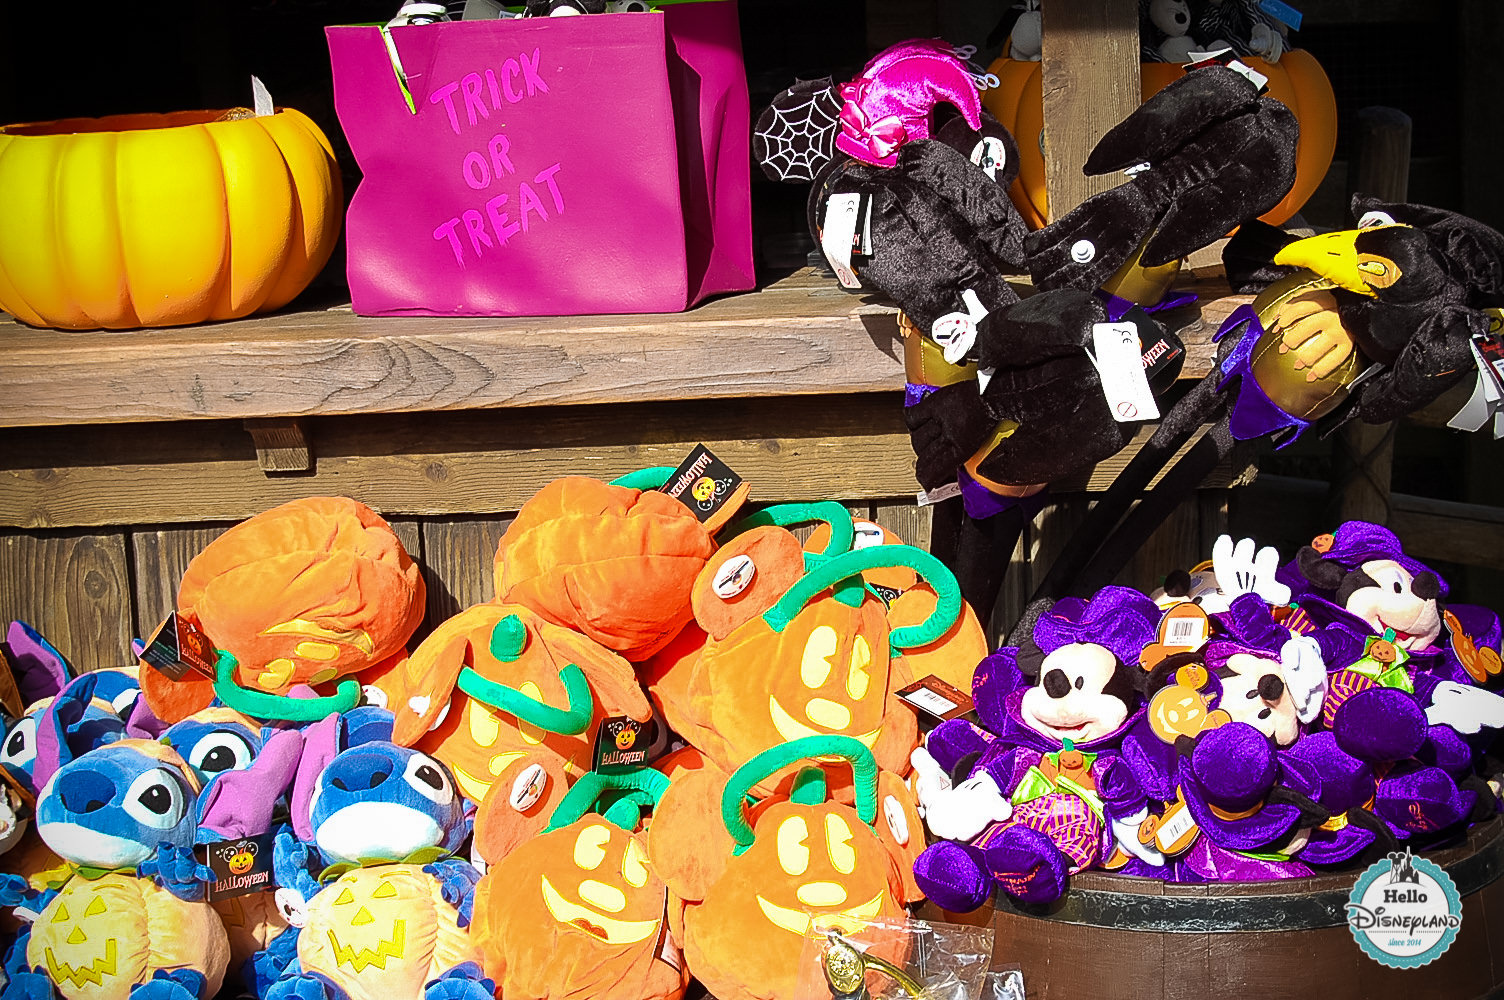 Halloween Archives - Disneyland Paris -30